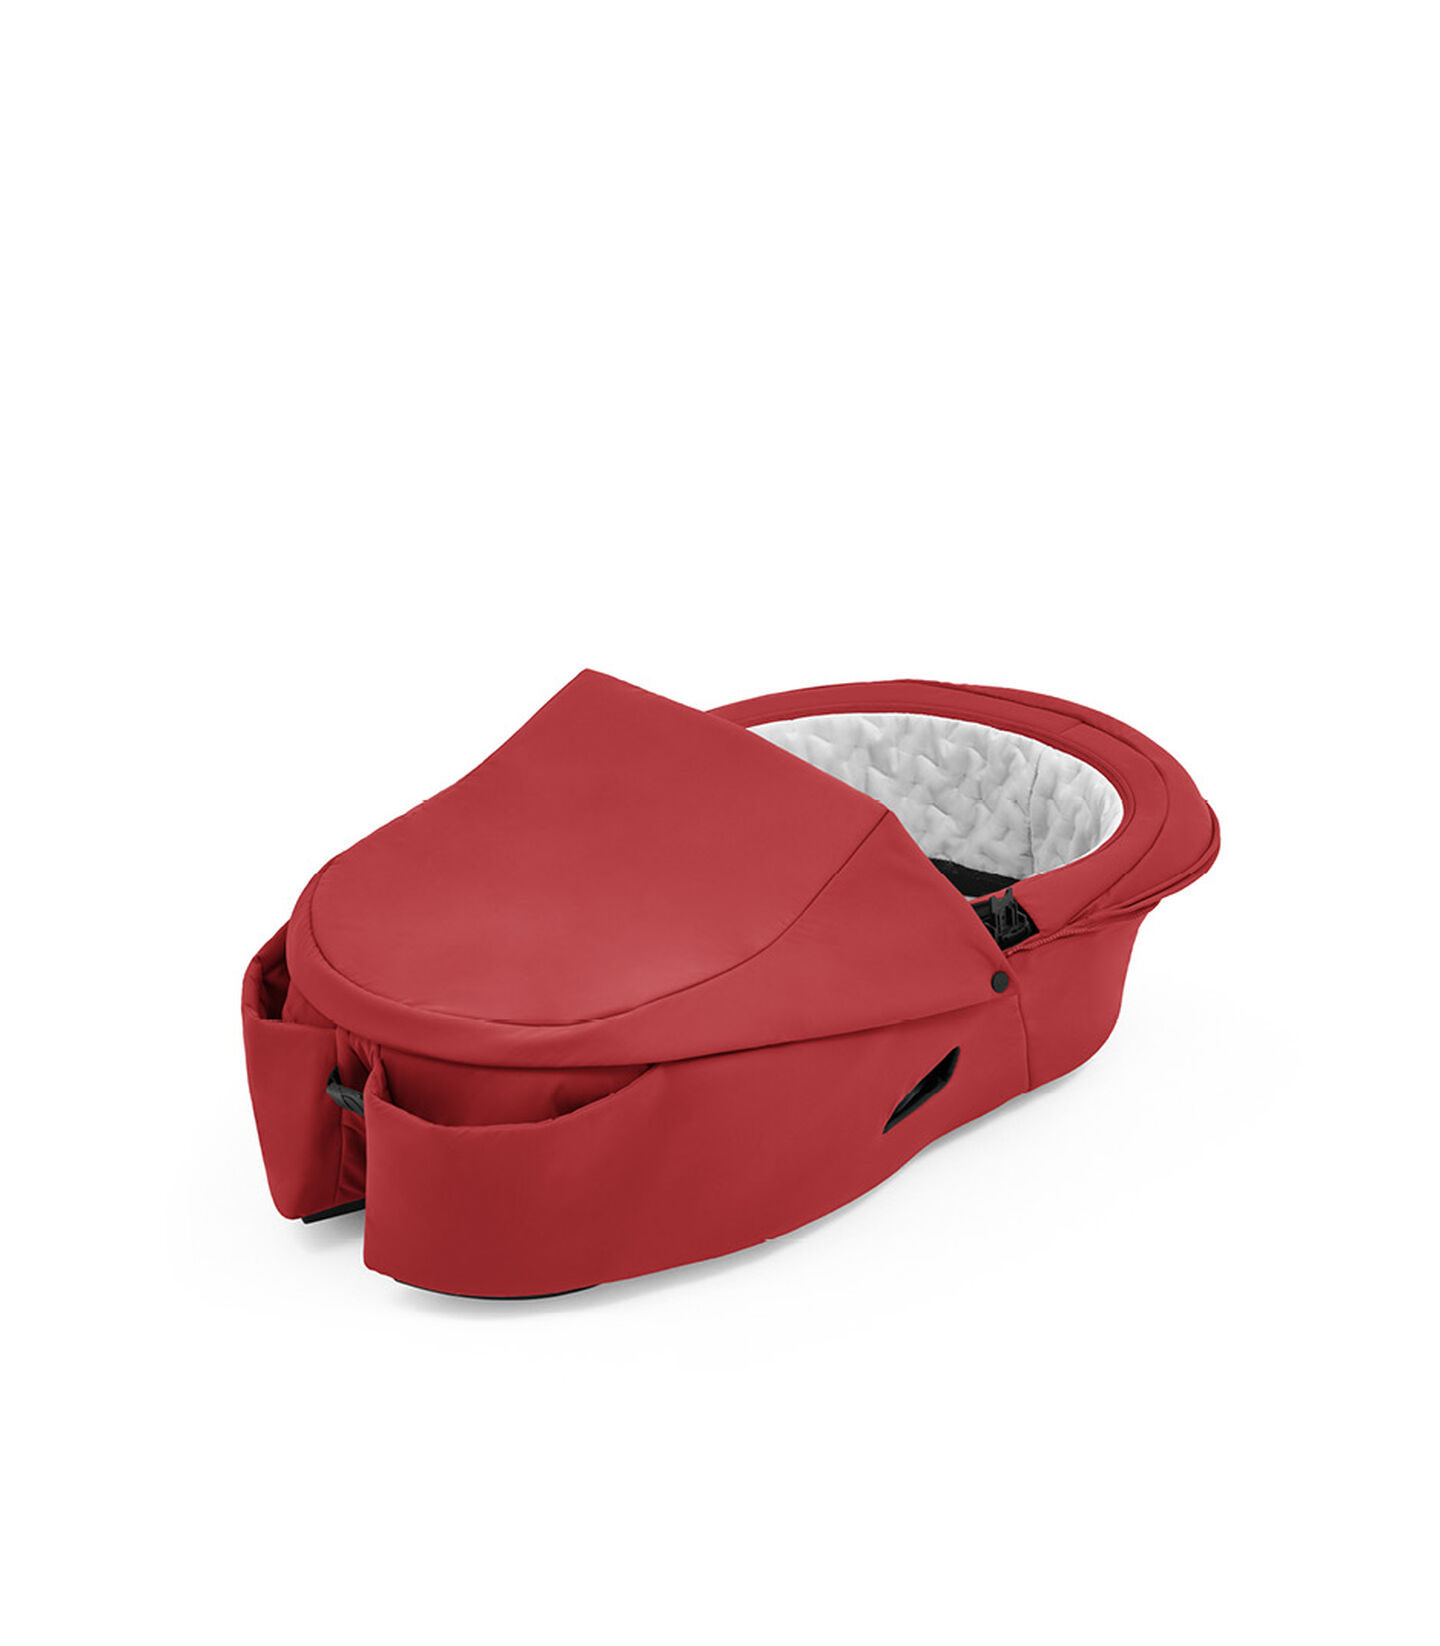 Stokke® Xplory® X Ruby Red Carry Cot, no canopy. view 1